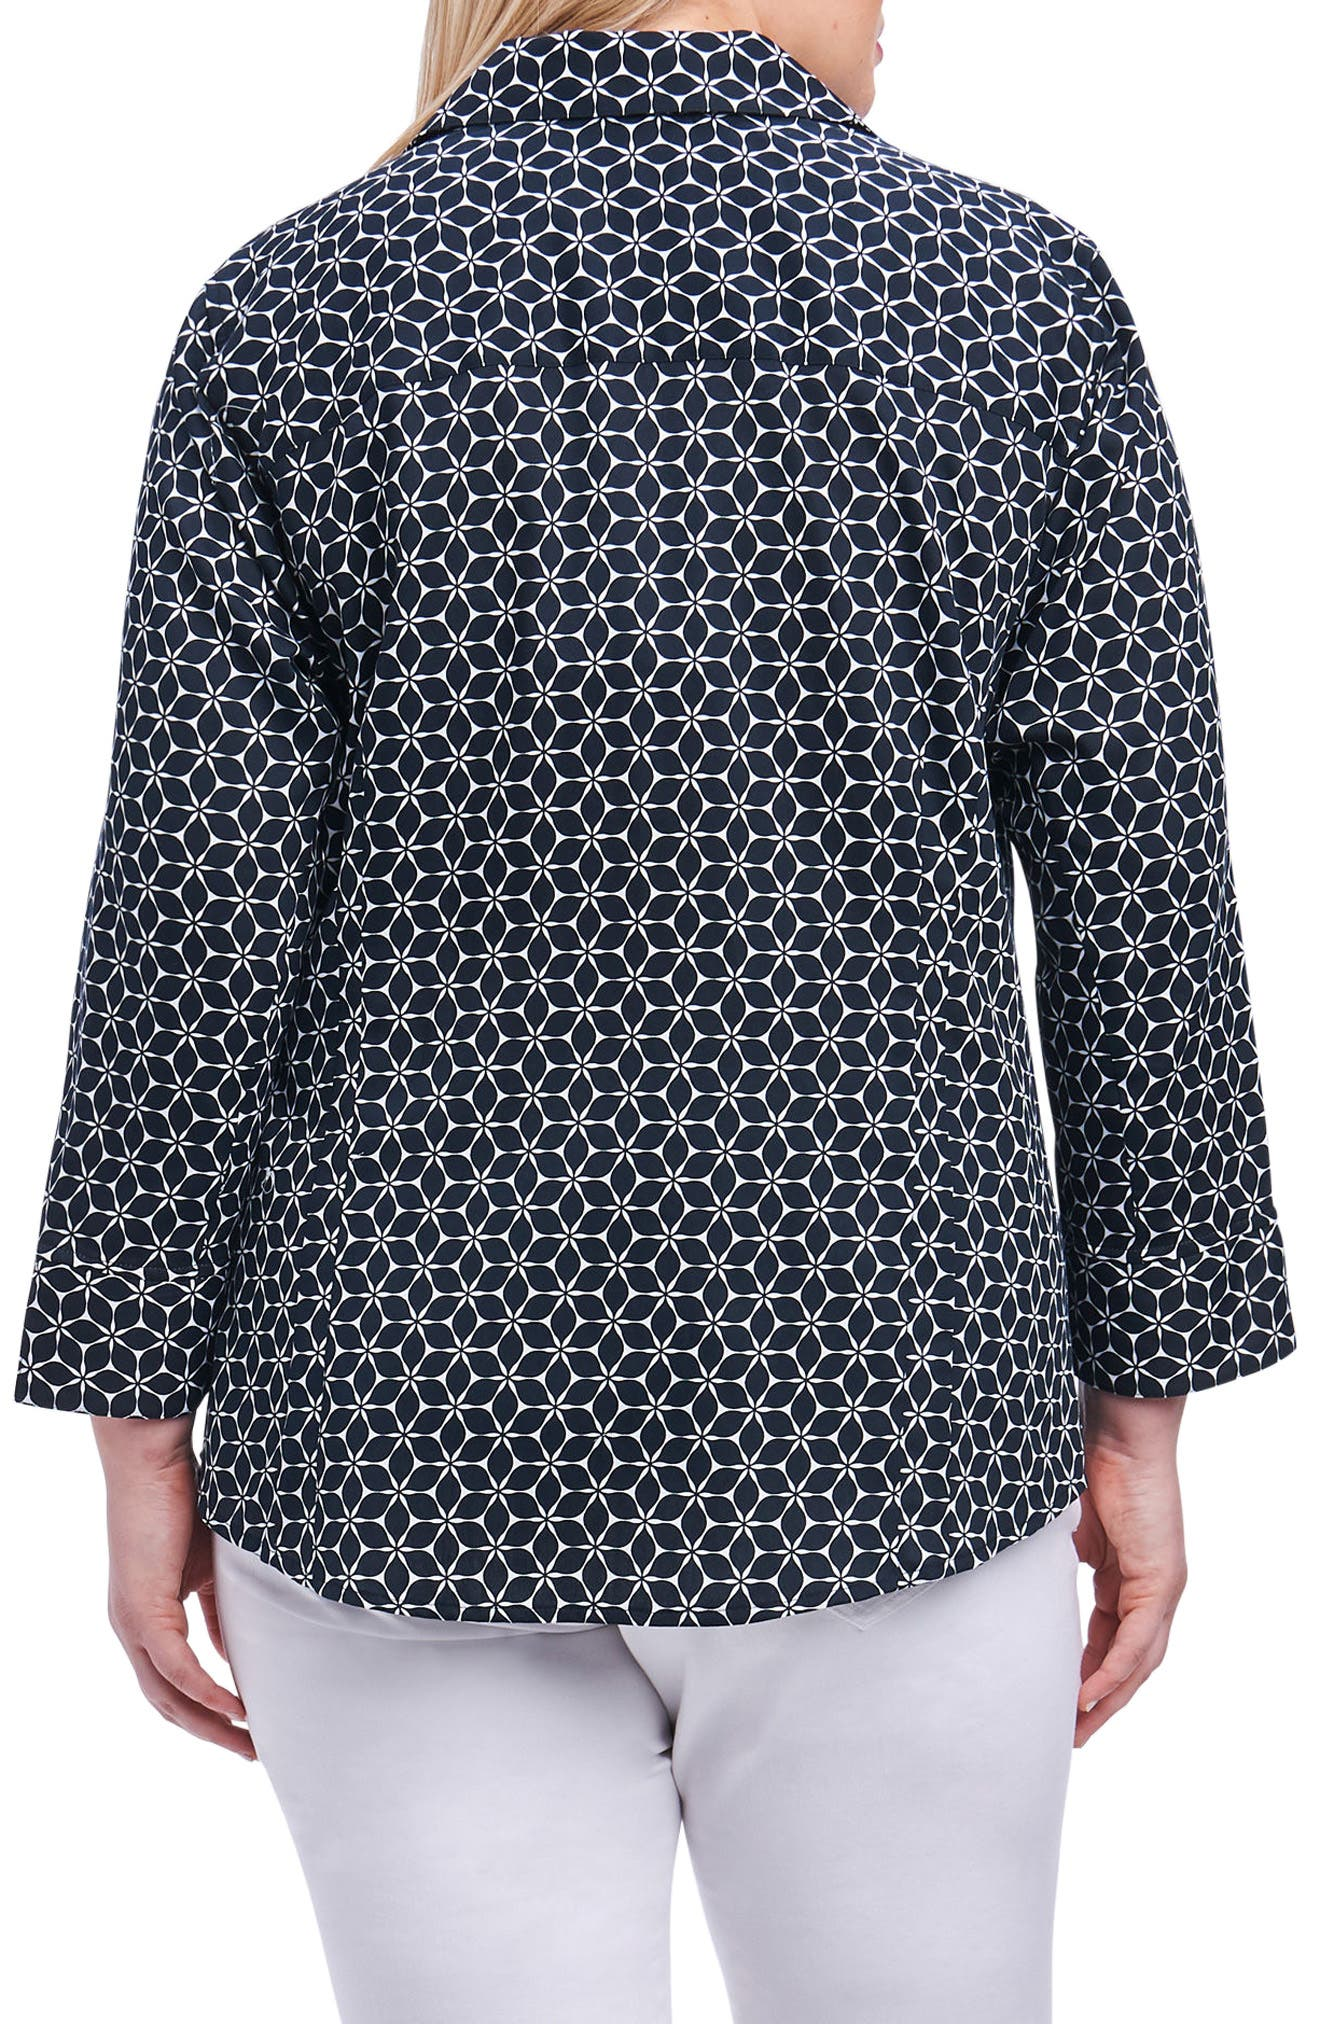 Taylor Optic Floral Print Shirt,                             Alternate thumbnail 2, color,